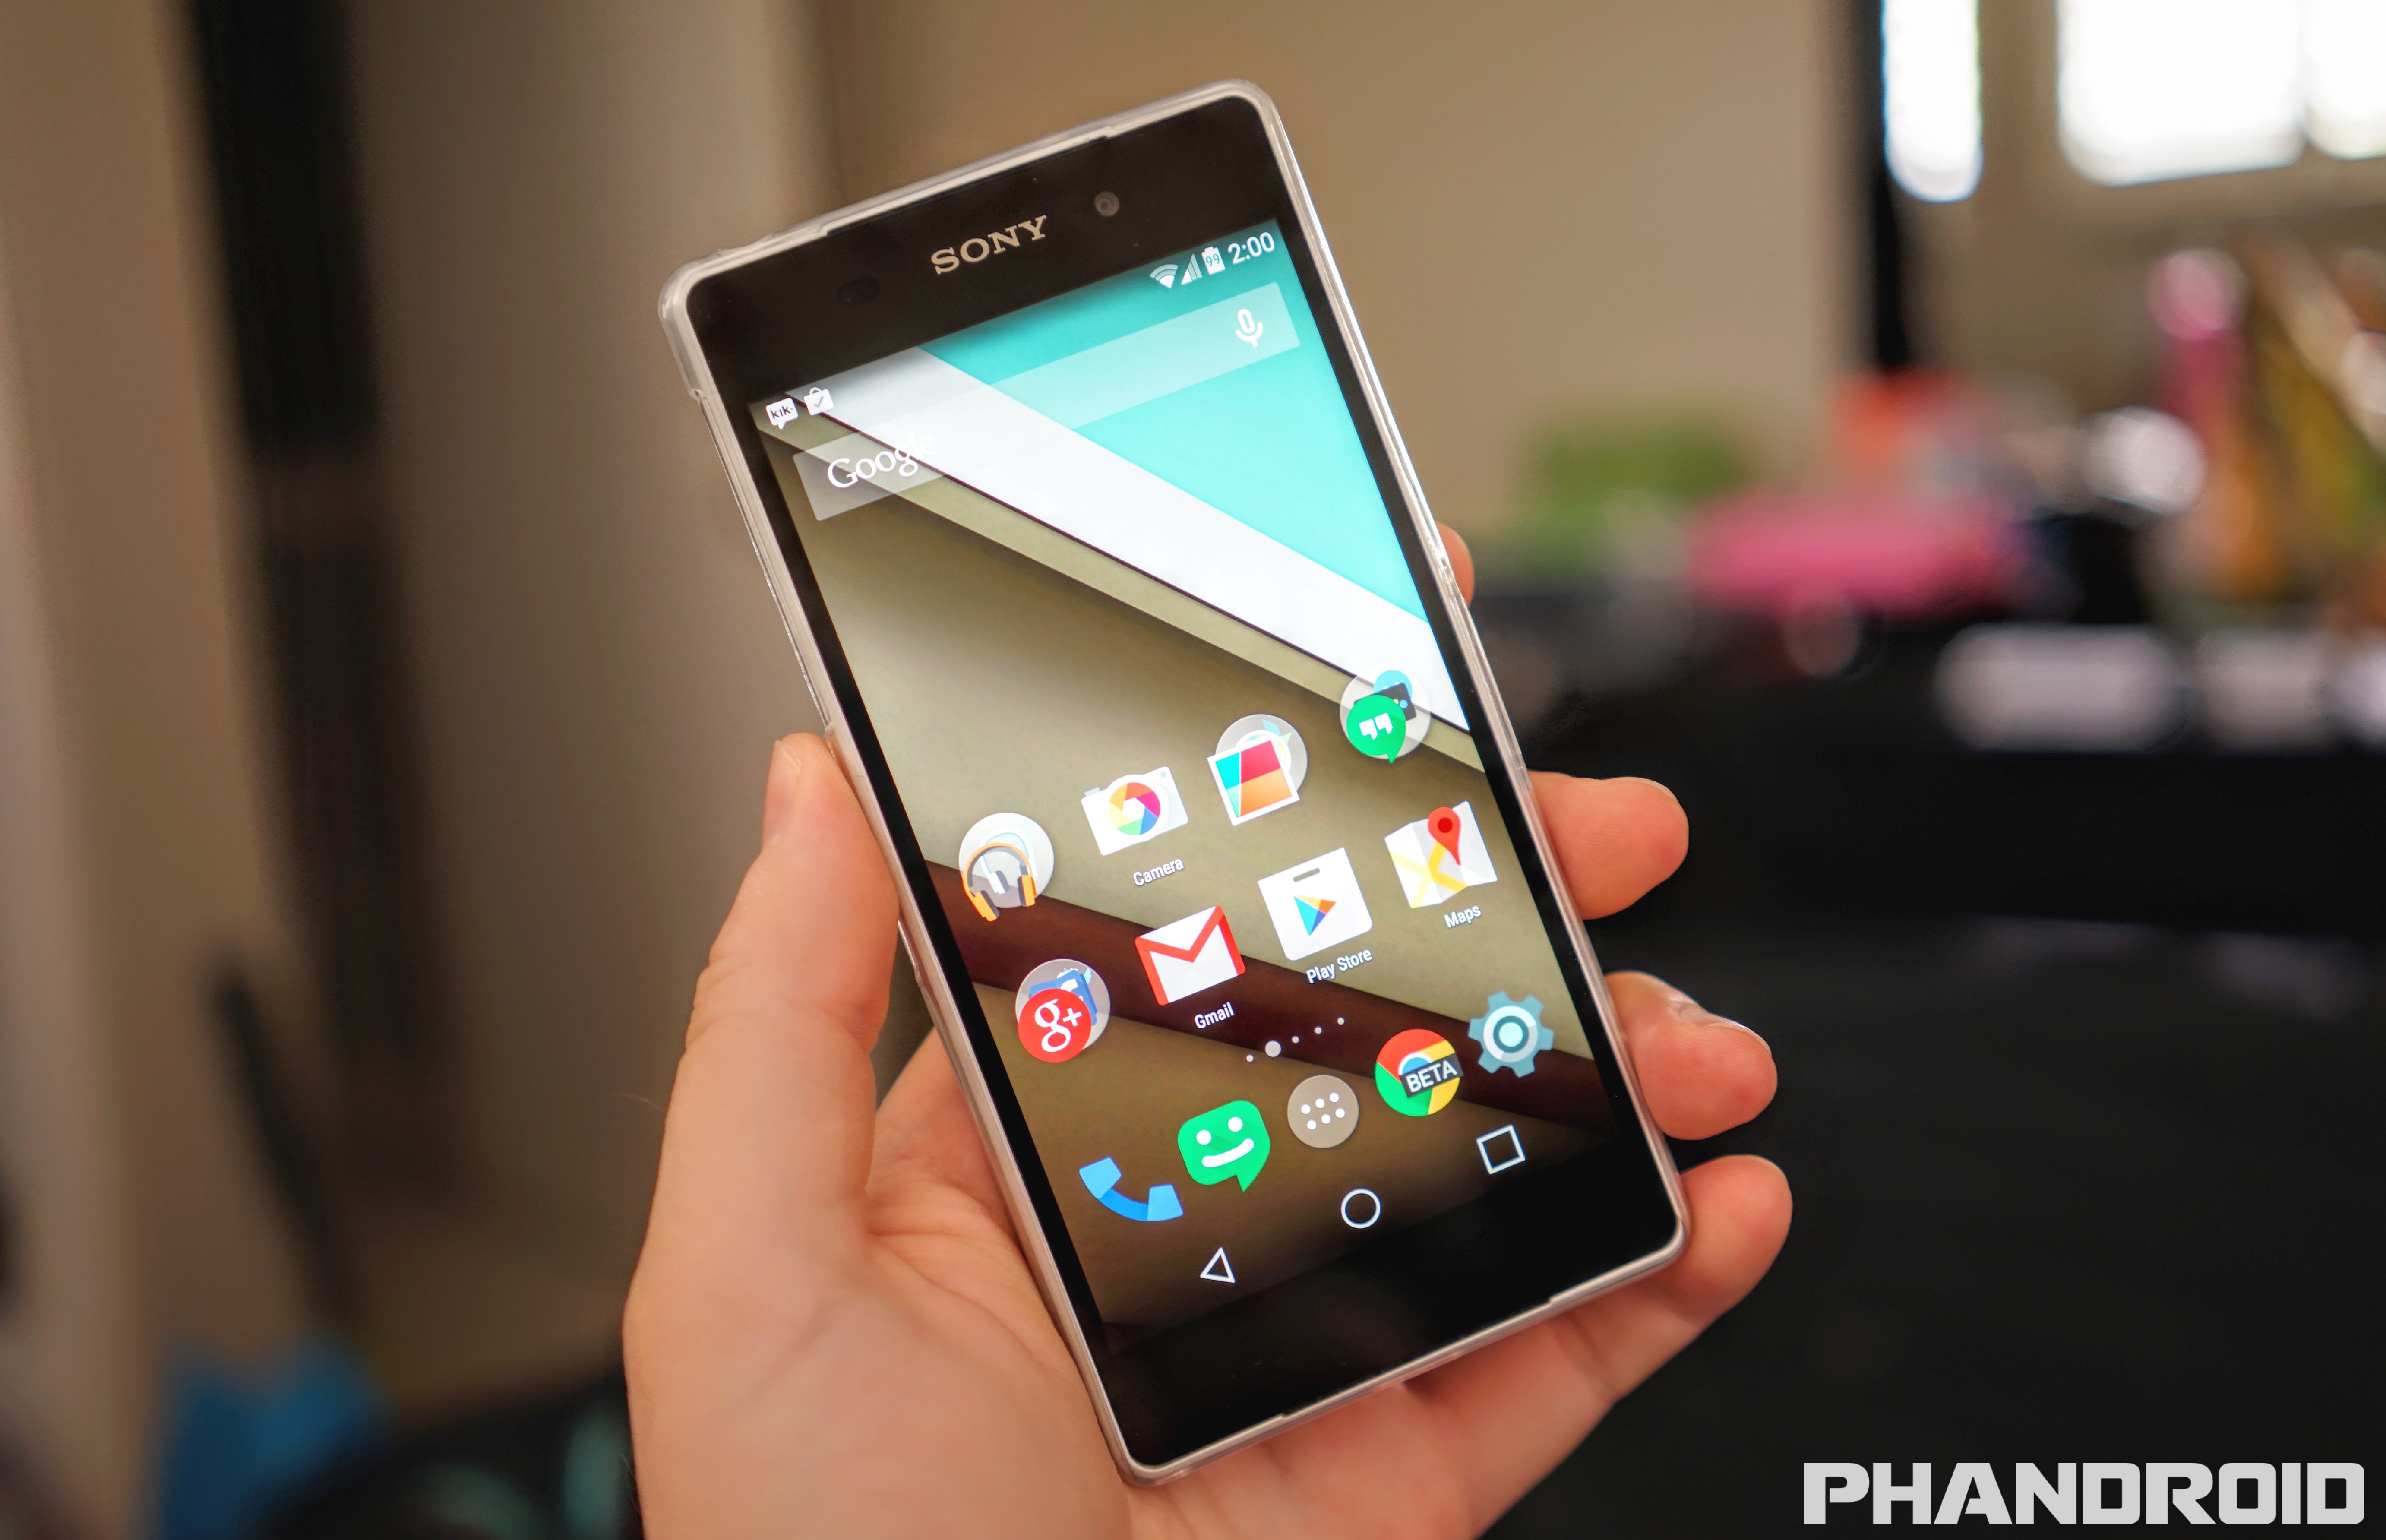 Sony Xperia Z2 and Z3 family get Android 5 1 Lollipop today